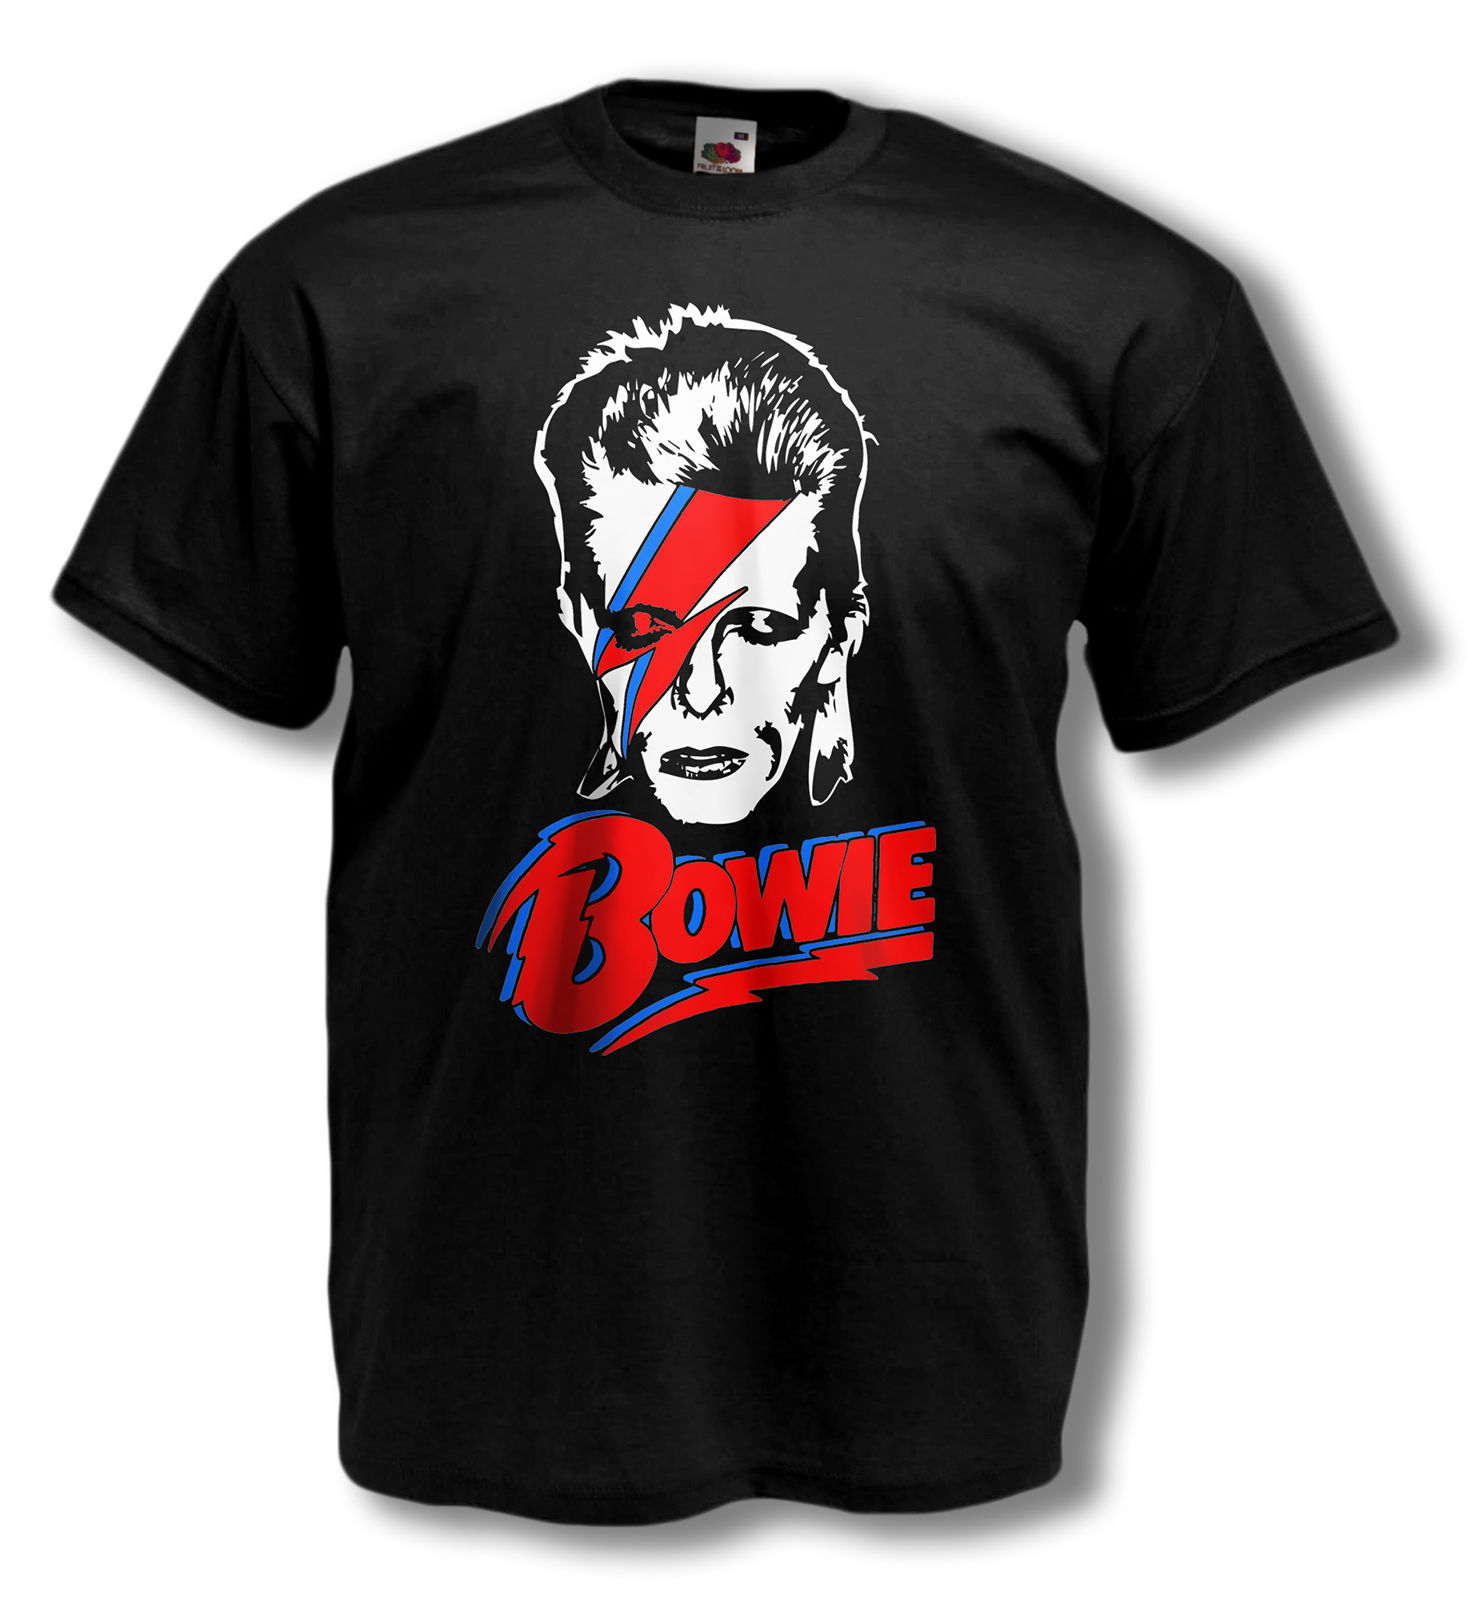 David Bowie T-shirt ALADDIN SANE tribute JEAN GENIE mens ALL SIZES Summer Short Sleeves Cotton T-Shirt top tee